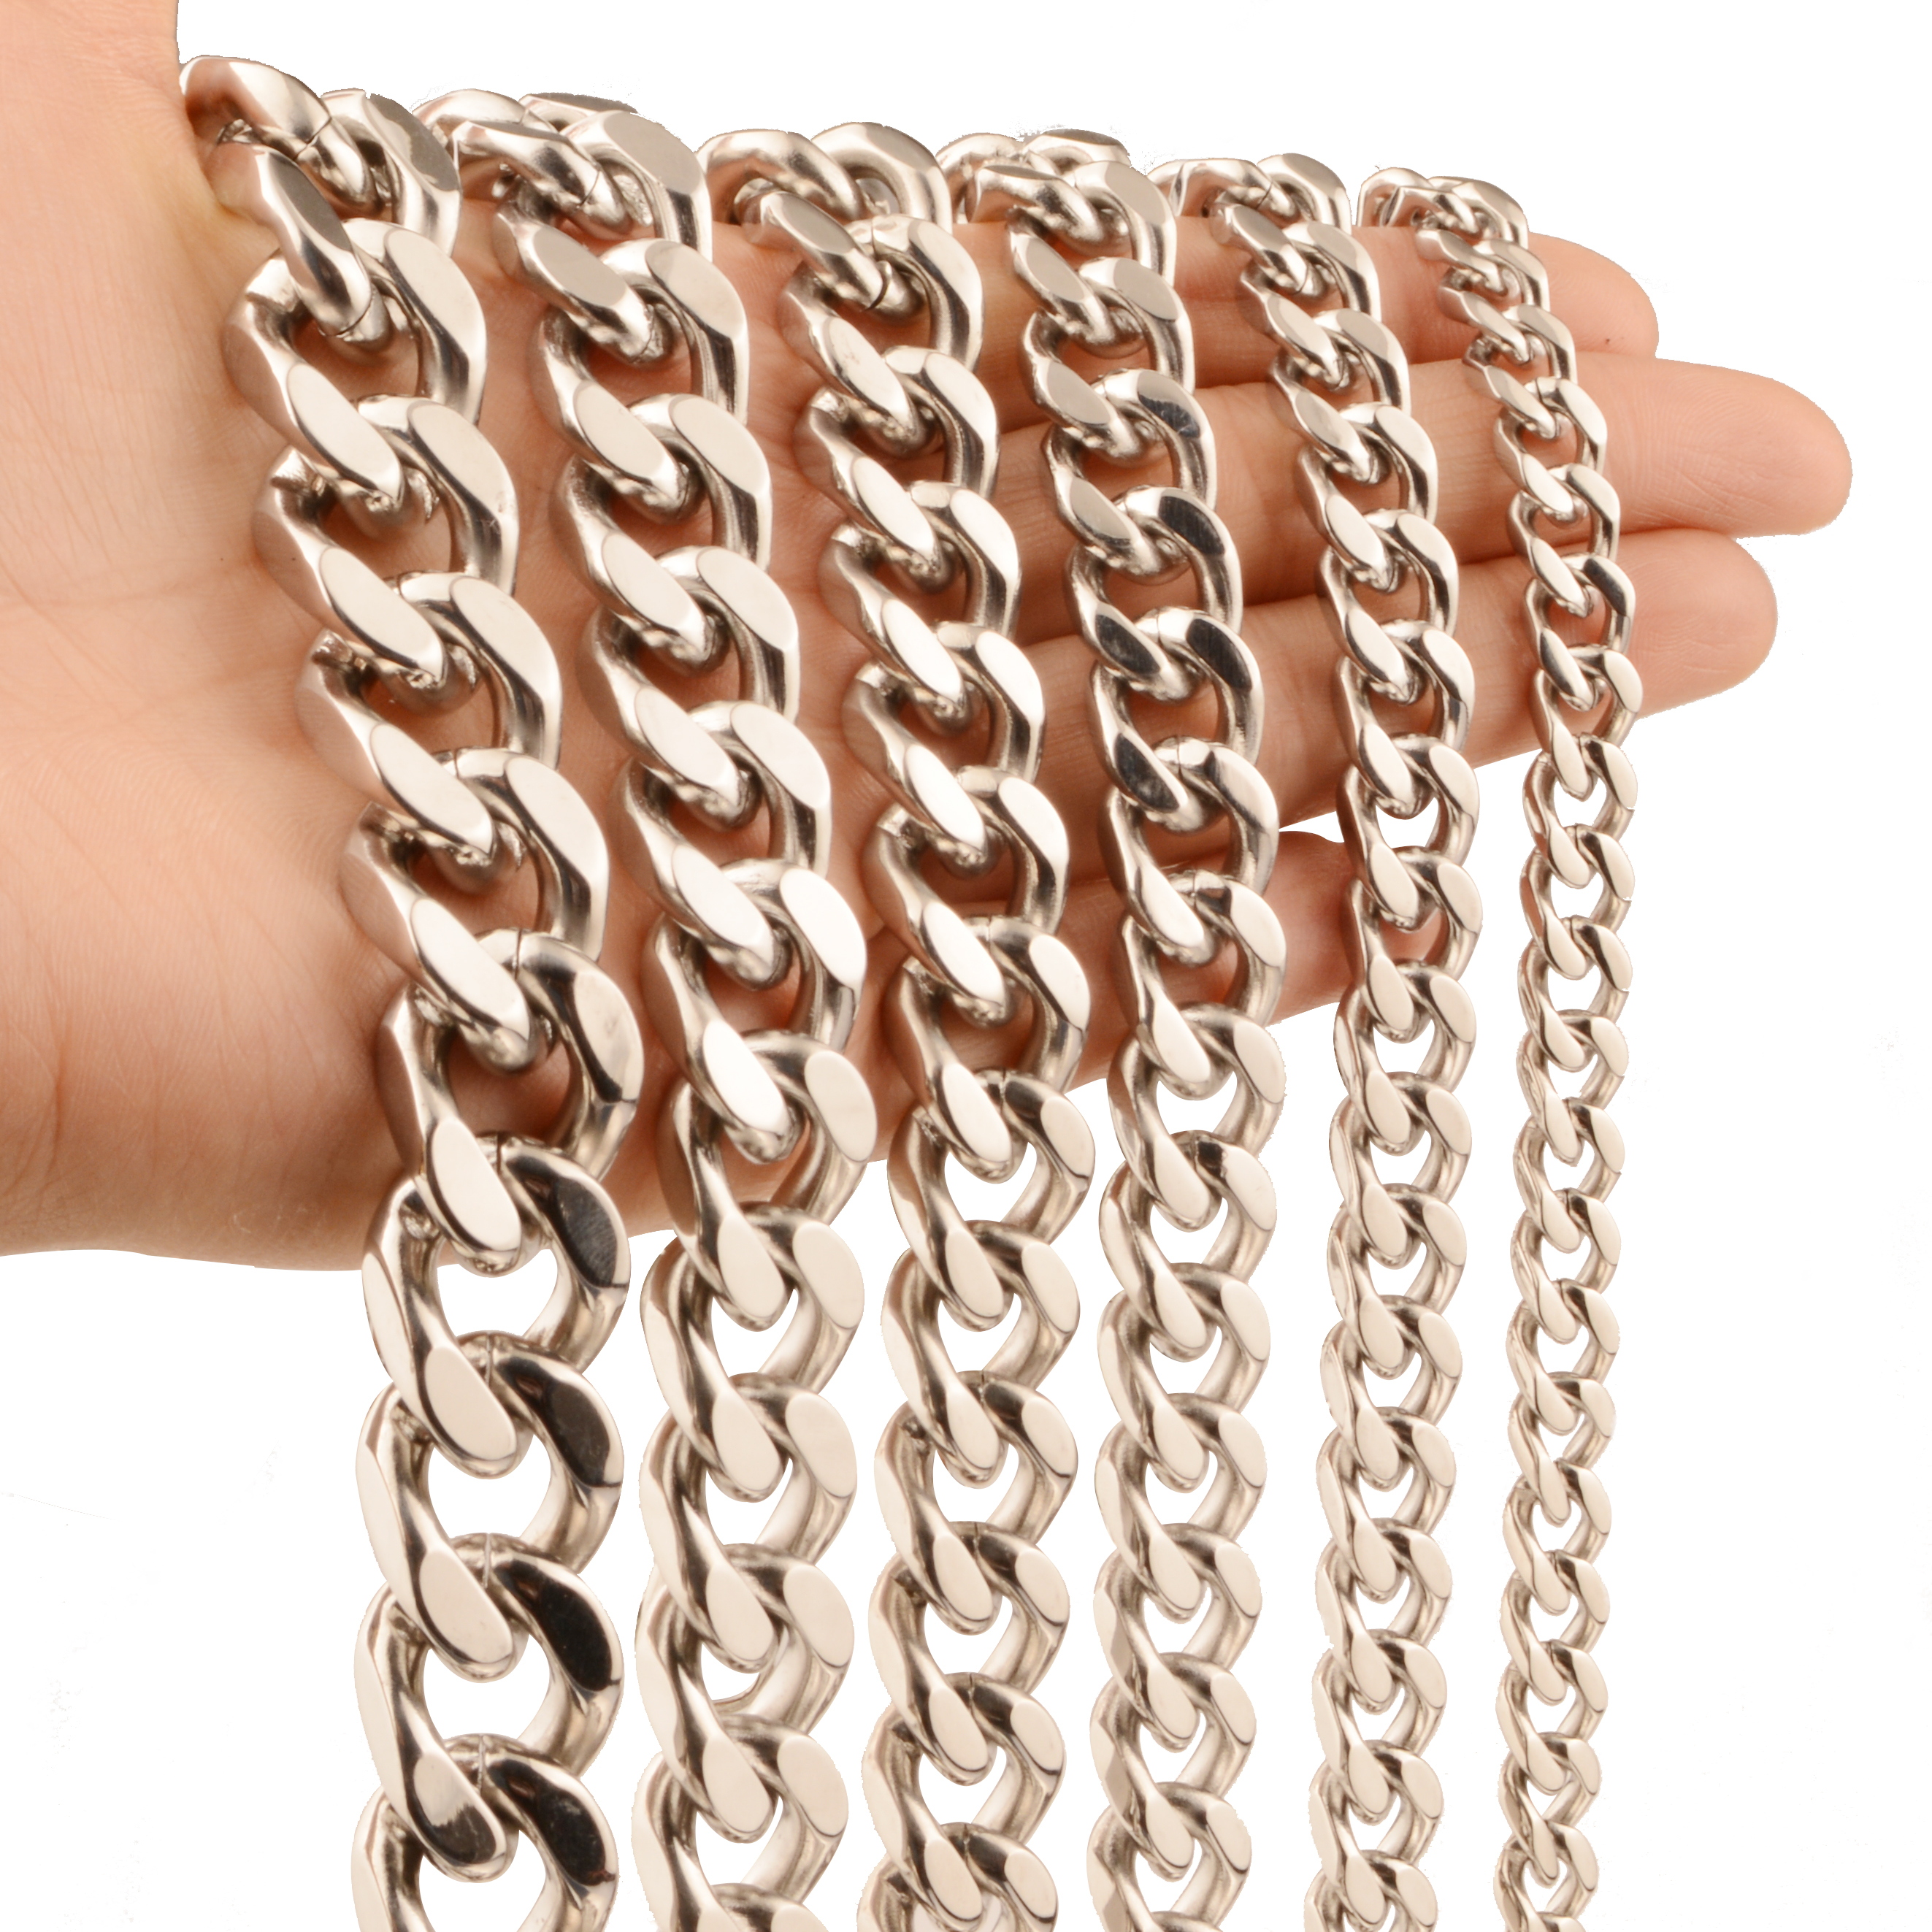 7/9/11/13/15/17mm Hip Hop Jewelry Men Chain Silver Color Stainless Steel Cuban Necklace for Curb Link